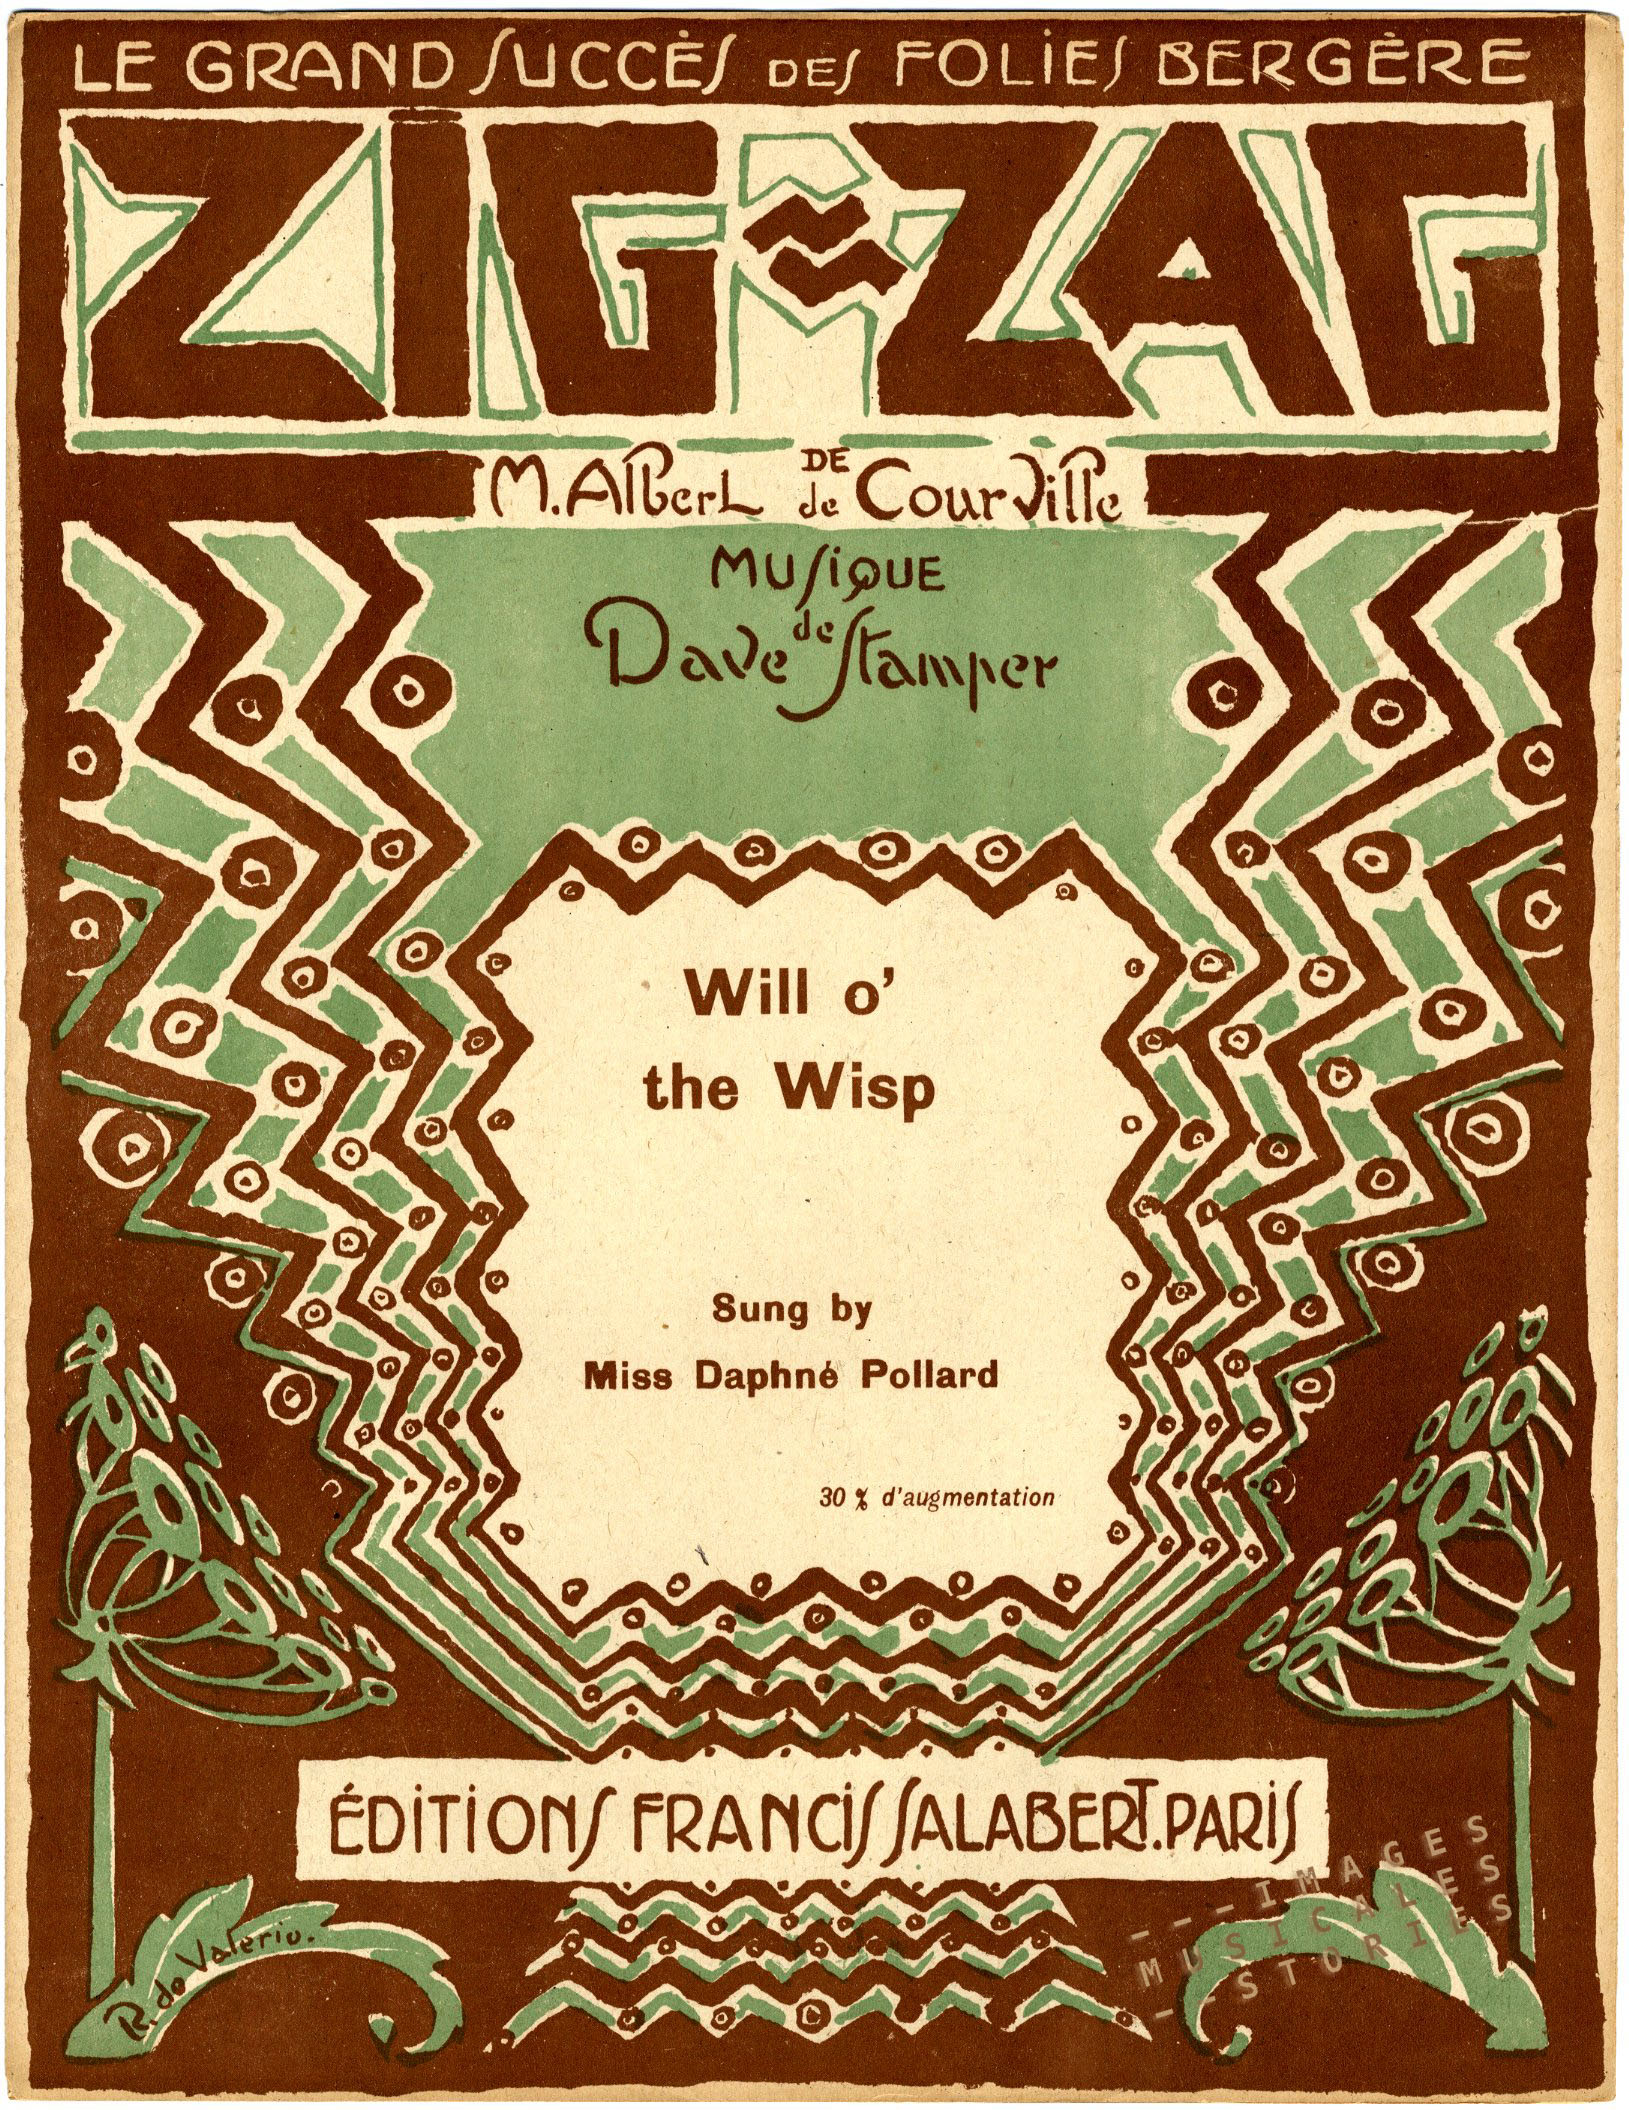 Sheet music illustration by R. de Valerio for the revue Tig-zag